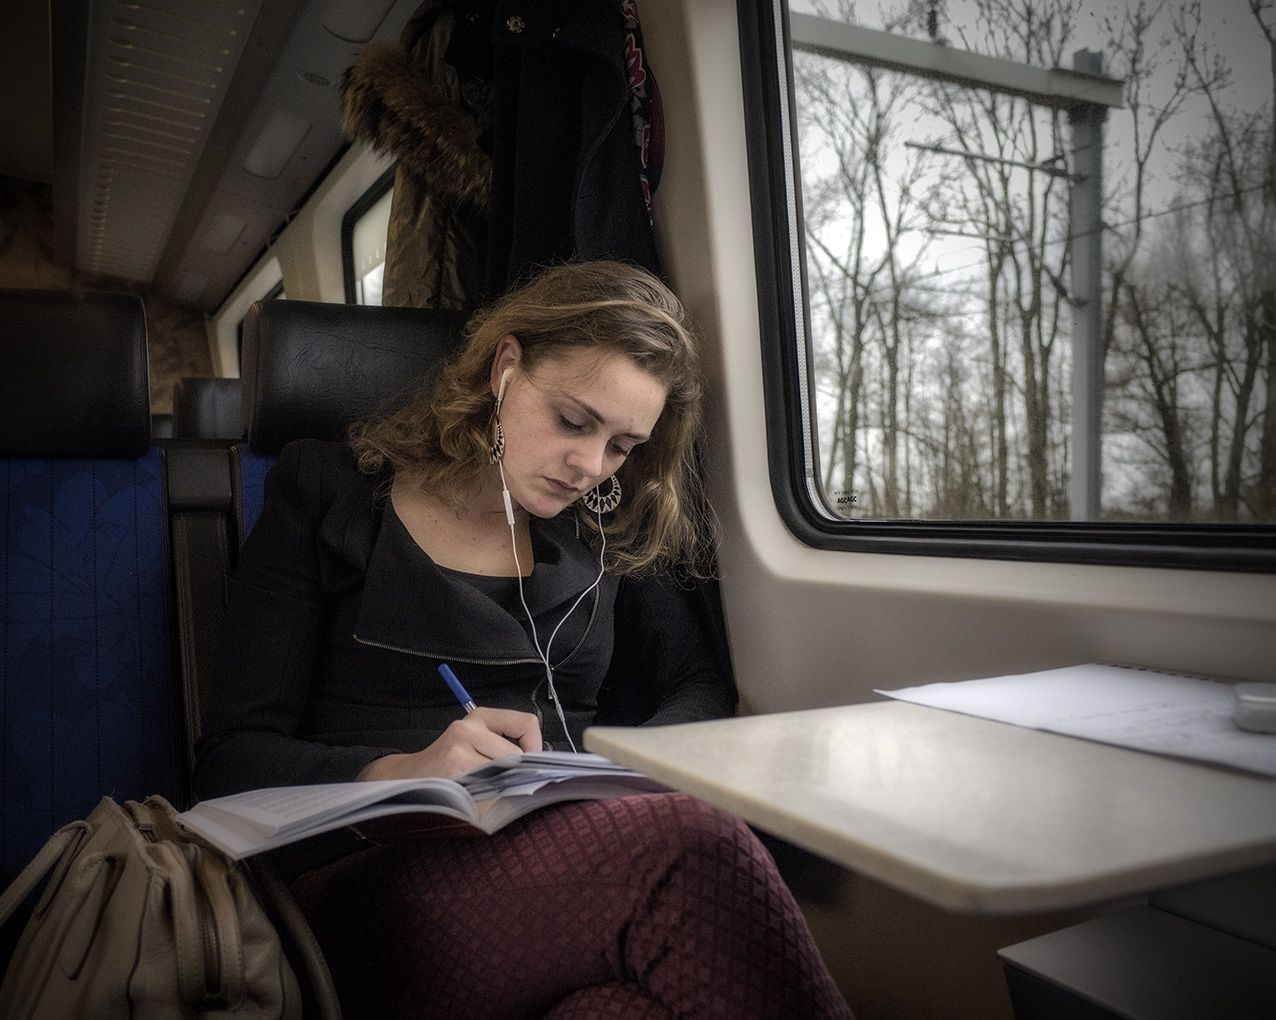 student in the train rotterdam groningen